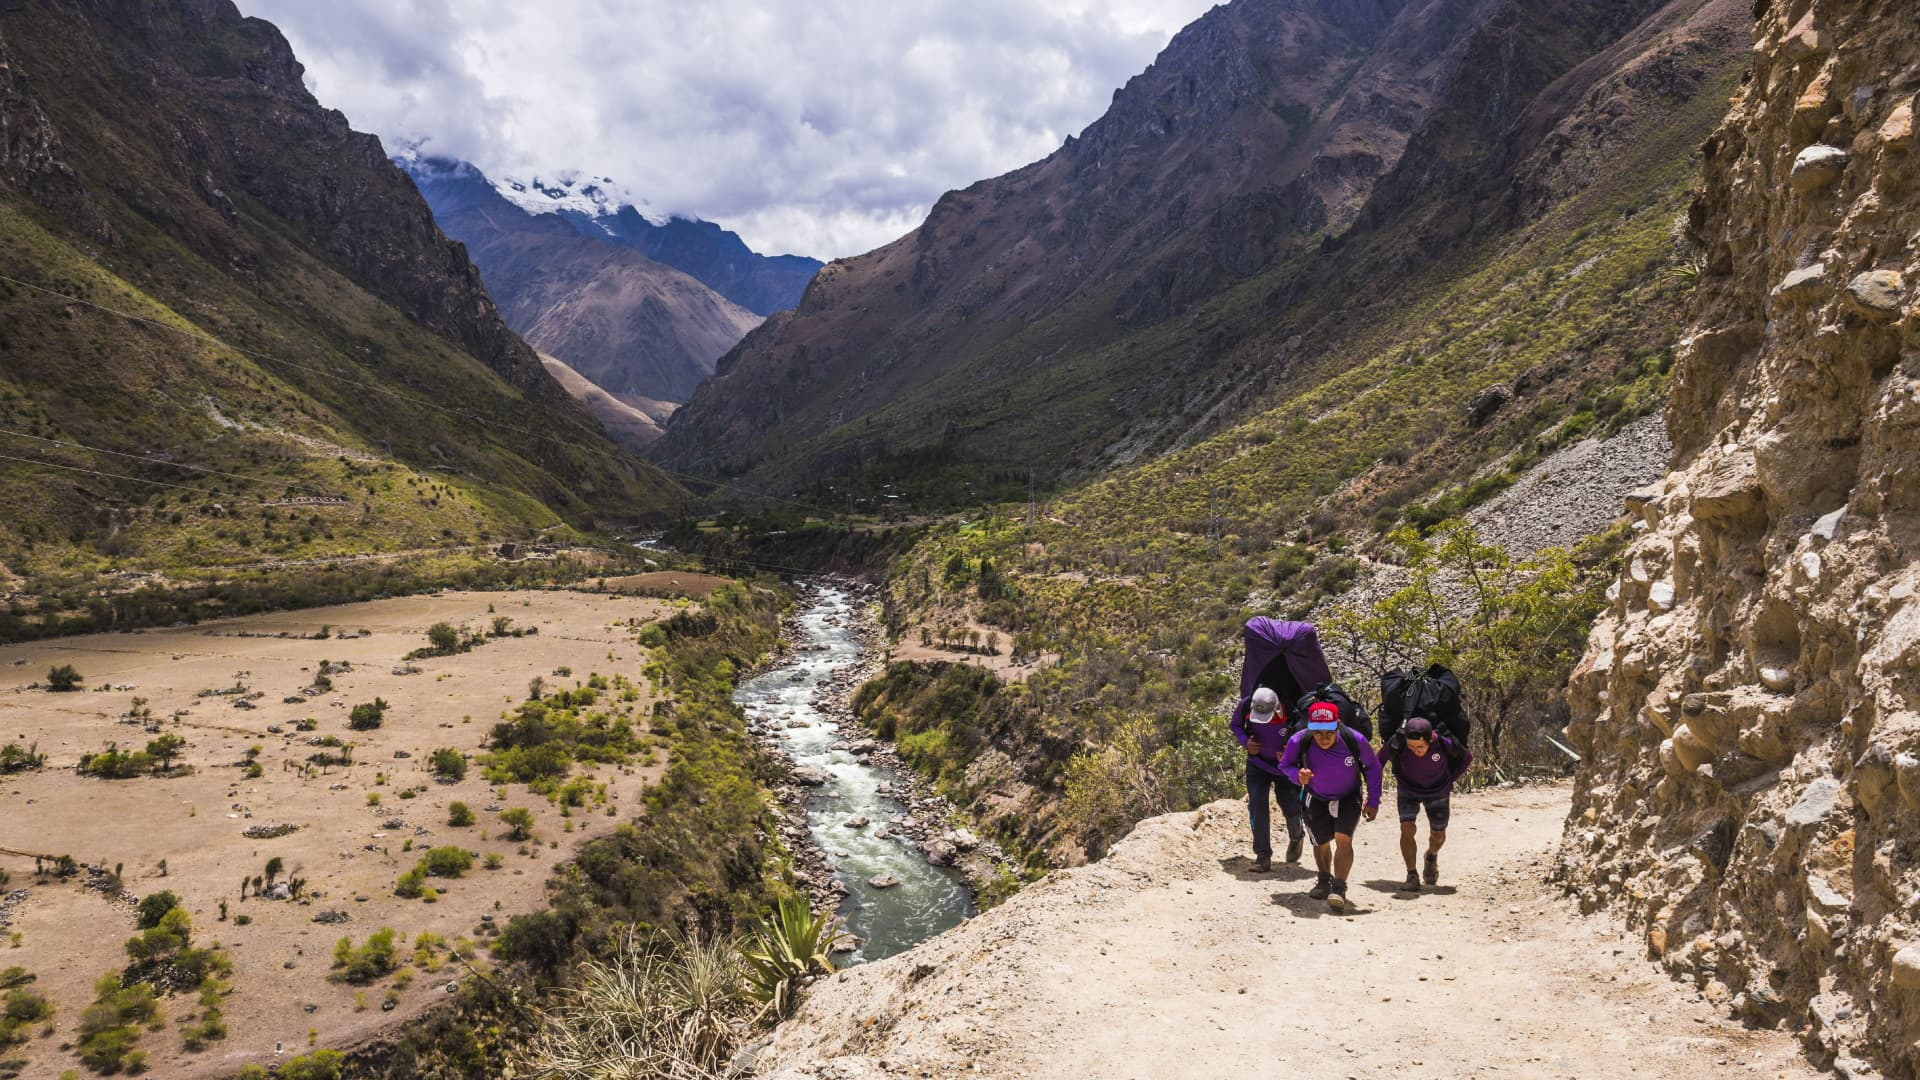 Like visitors to Machu Picchu, the number of hikers on the Inca Trail have also been restricted.